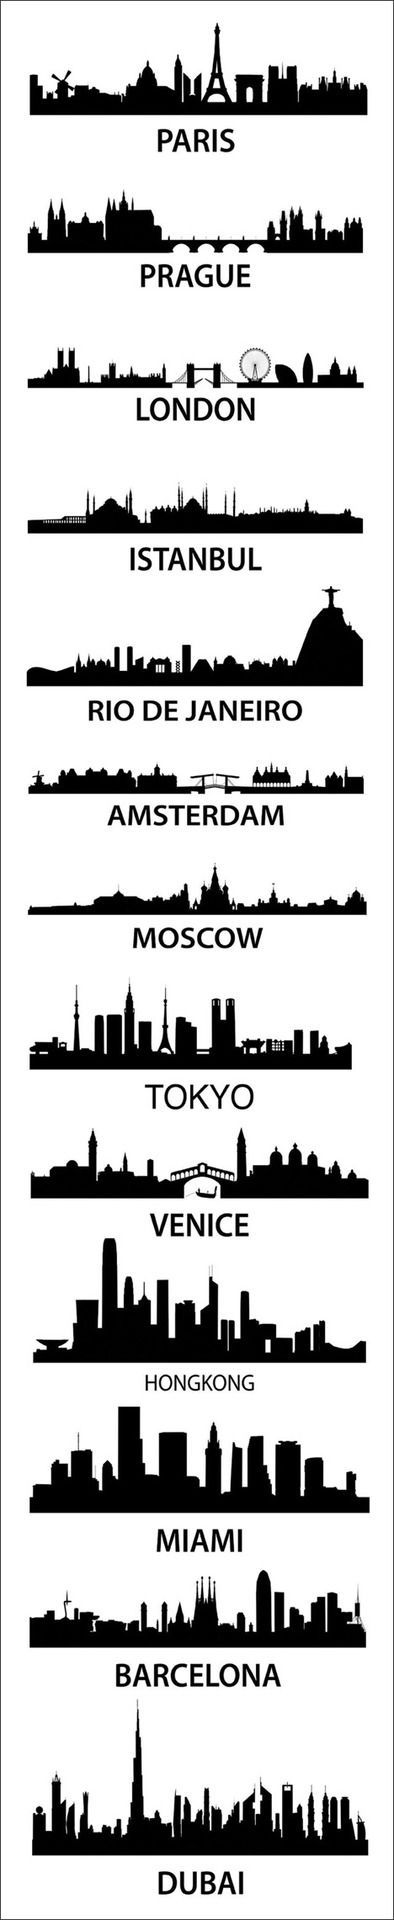 It would be cool to have all these skylines connected in a line around your bedroom wall. Sooo cool.